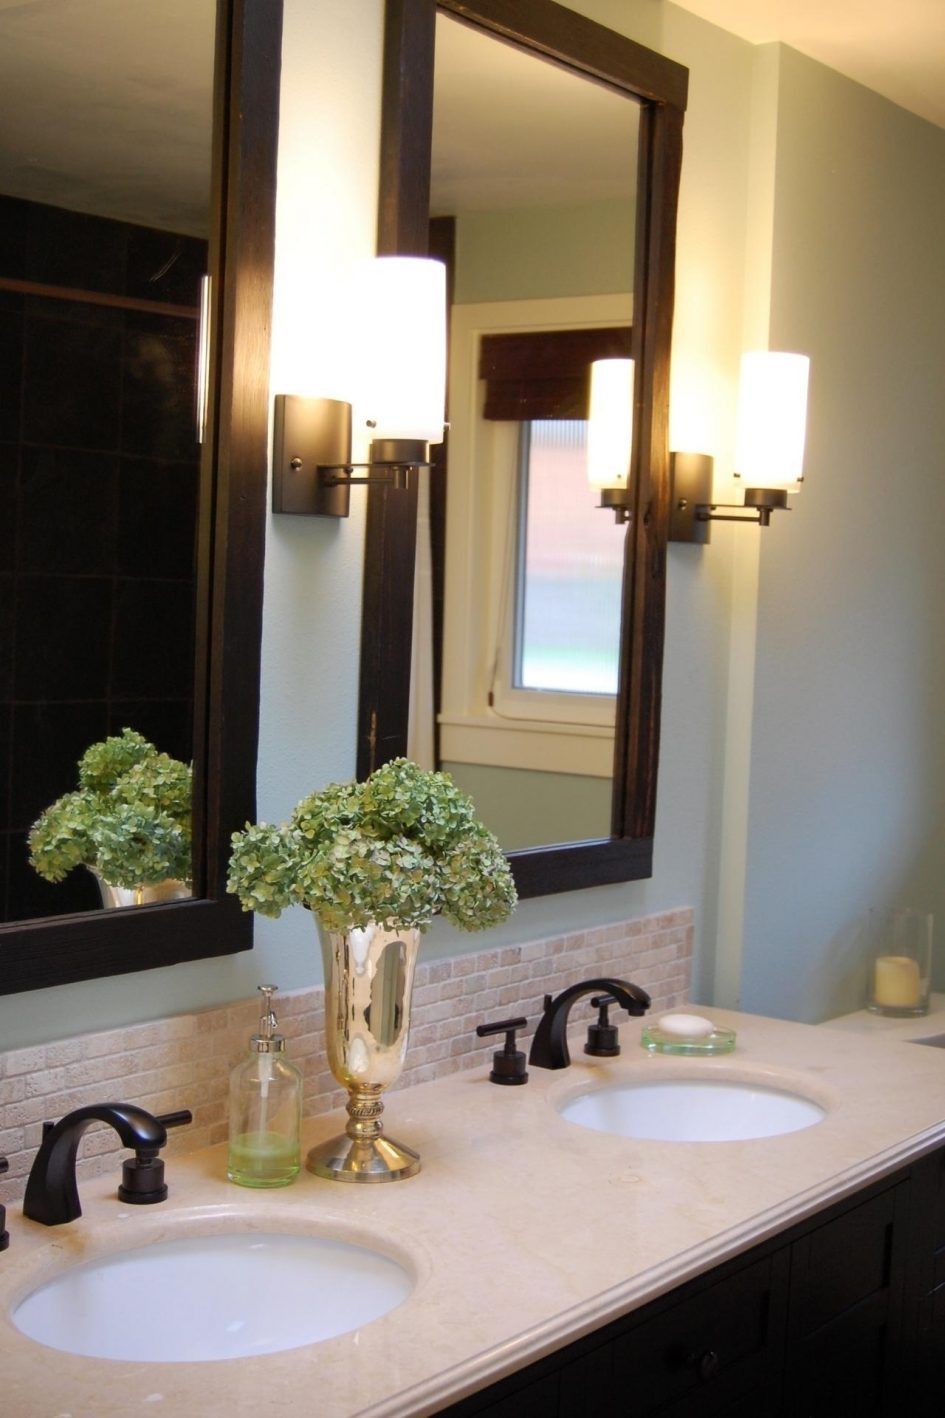 Bathroom Bathroom Mirror Frames With Flower Vase And ...